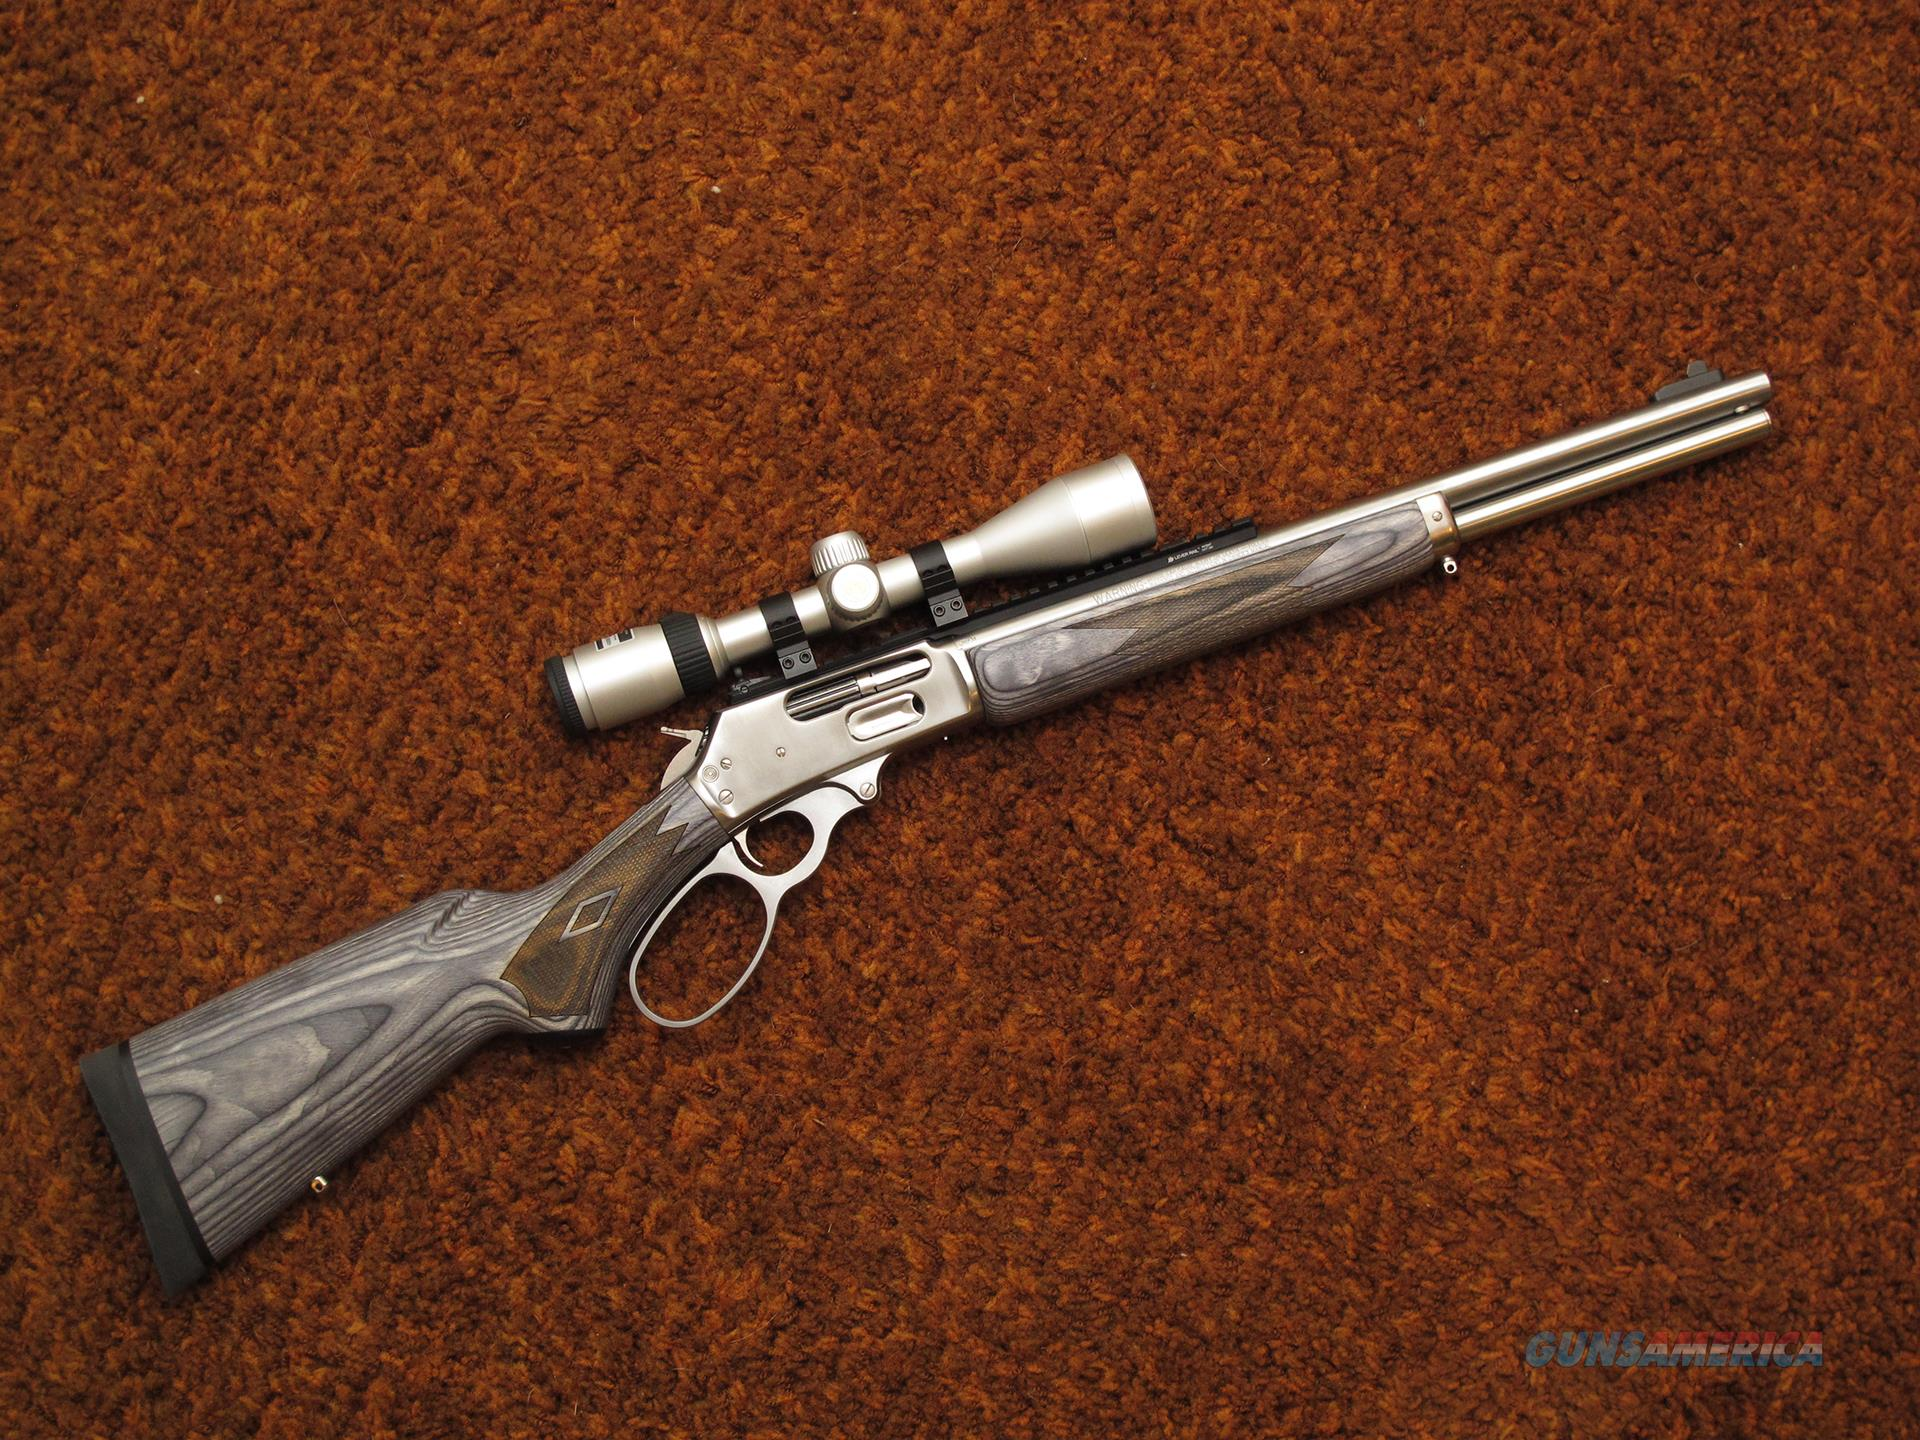 Marlin 1895 Trapper For Sale - Modern Home Revolution